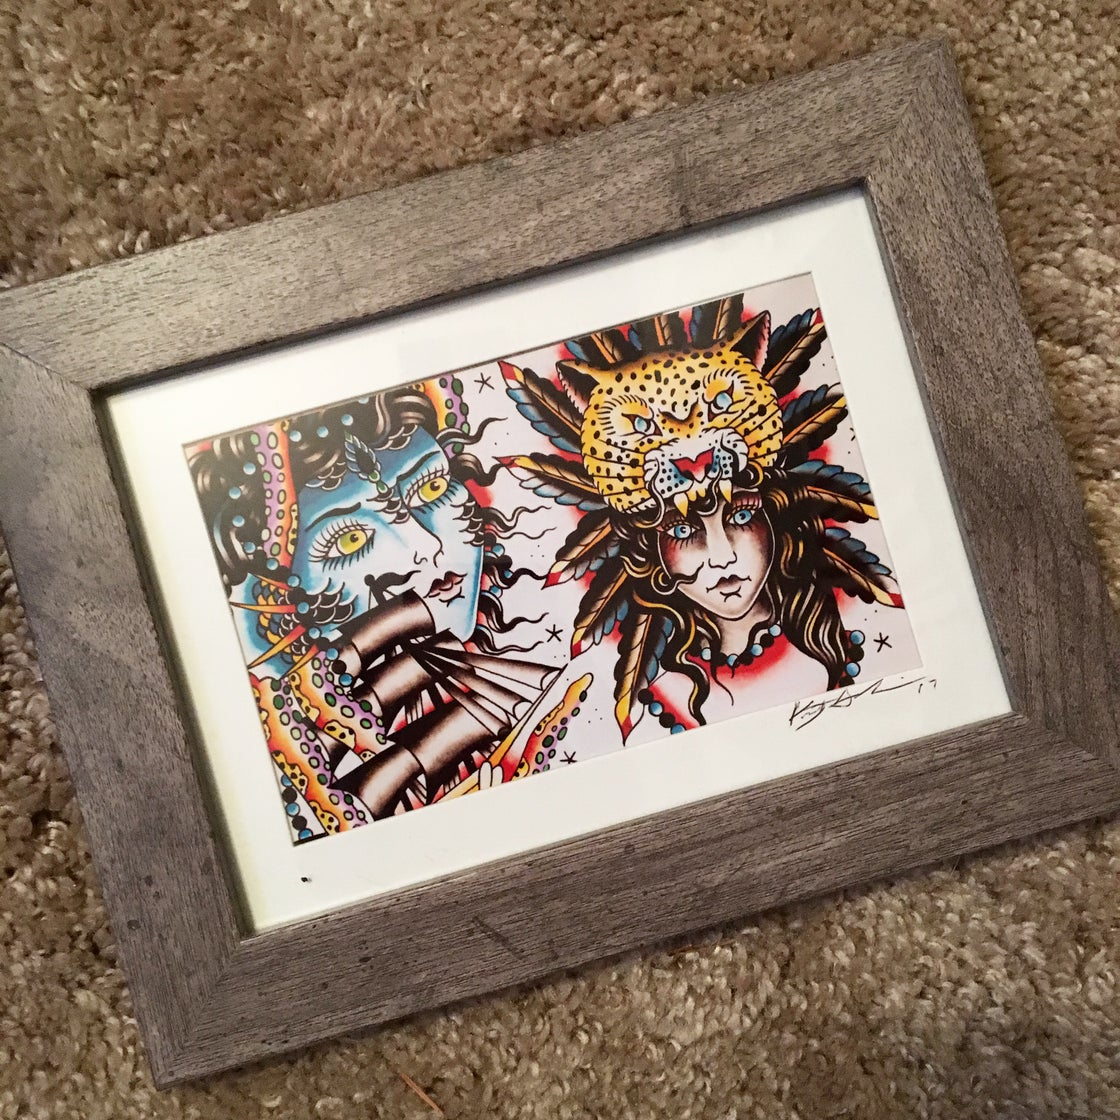 Image of KGART framed print